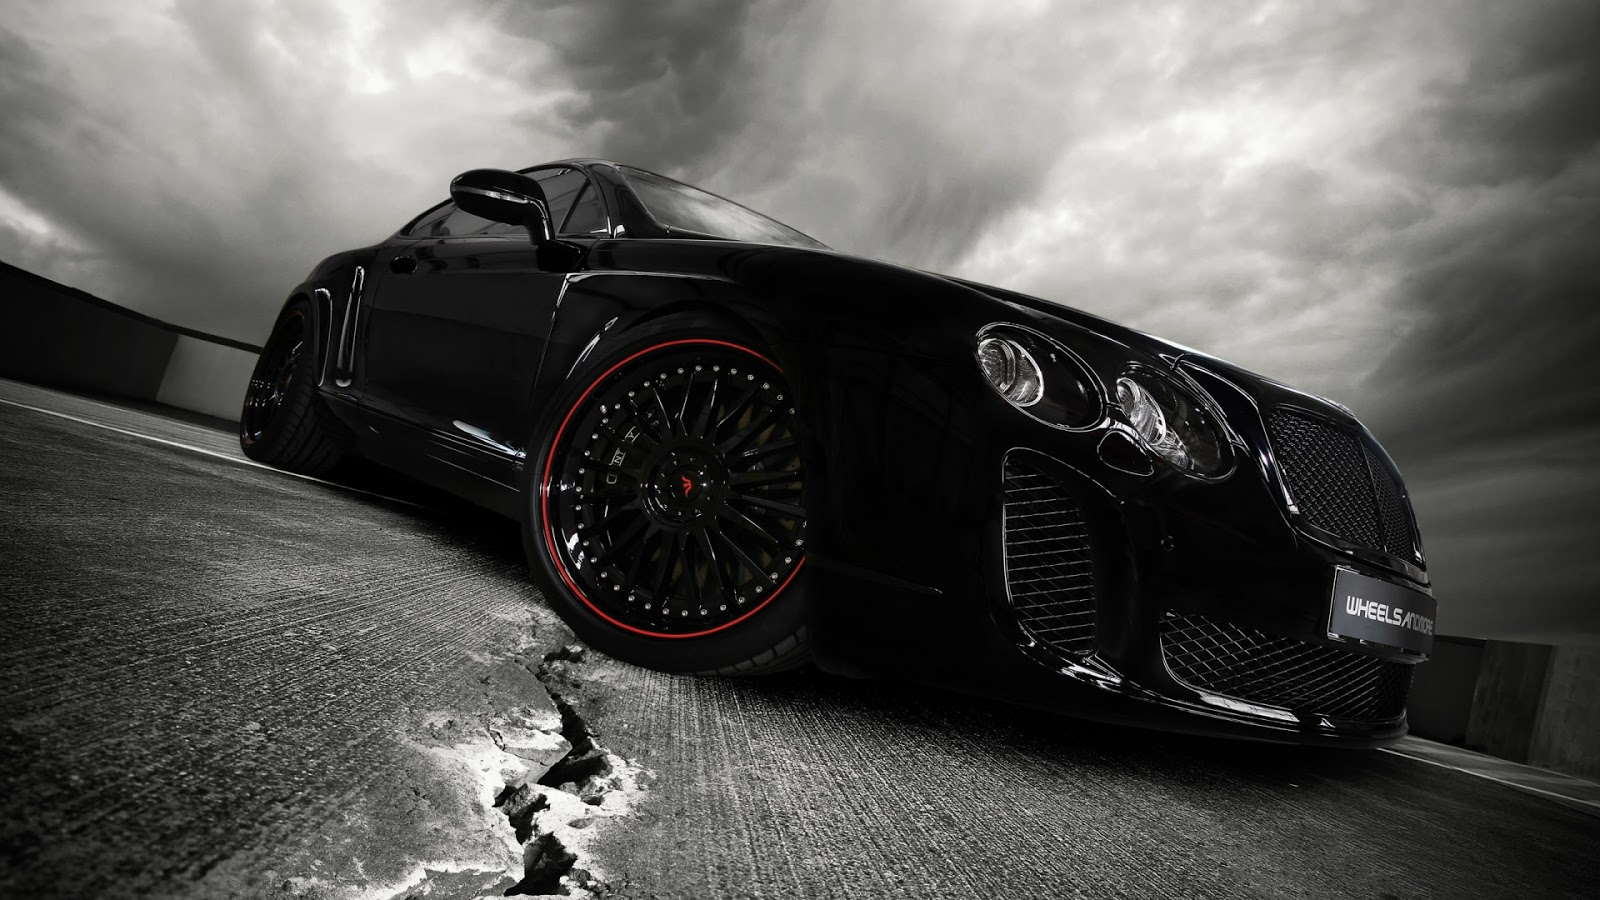 super hd black car wallpaper HD Desktop Wallpapers 1600x900